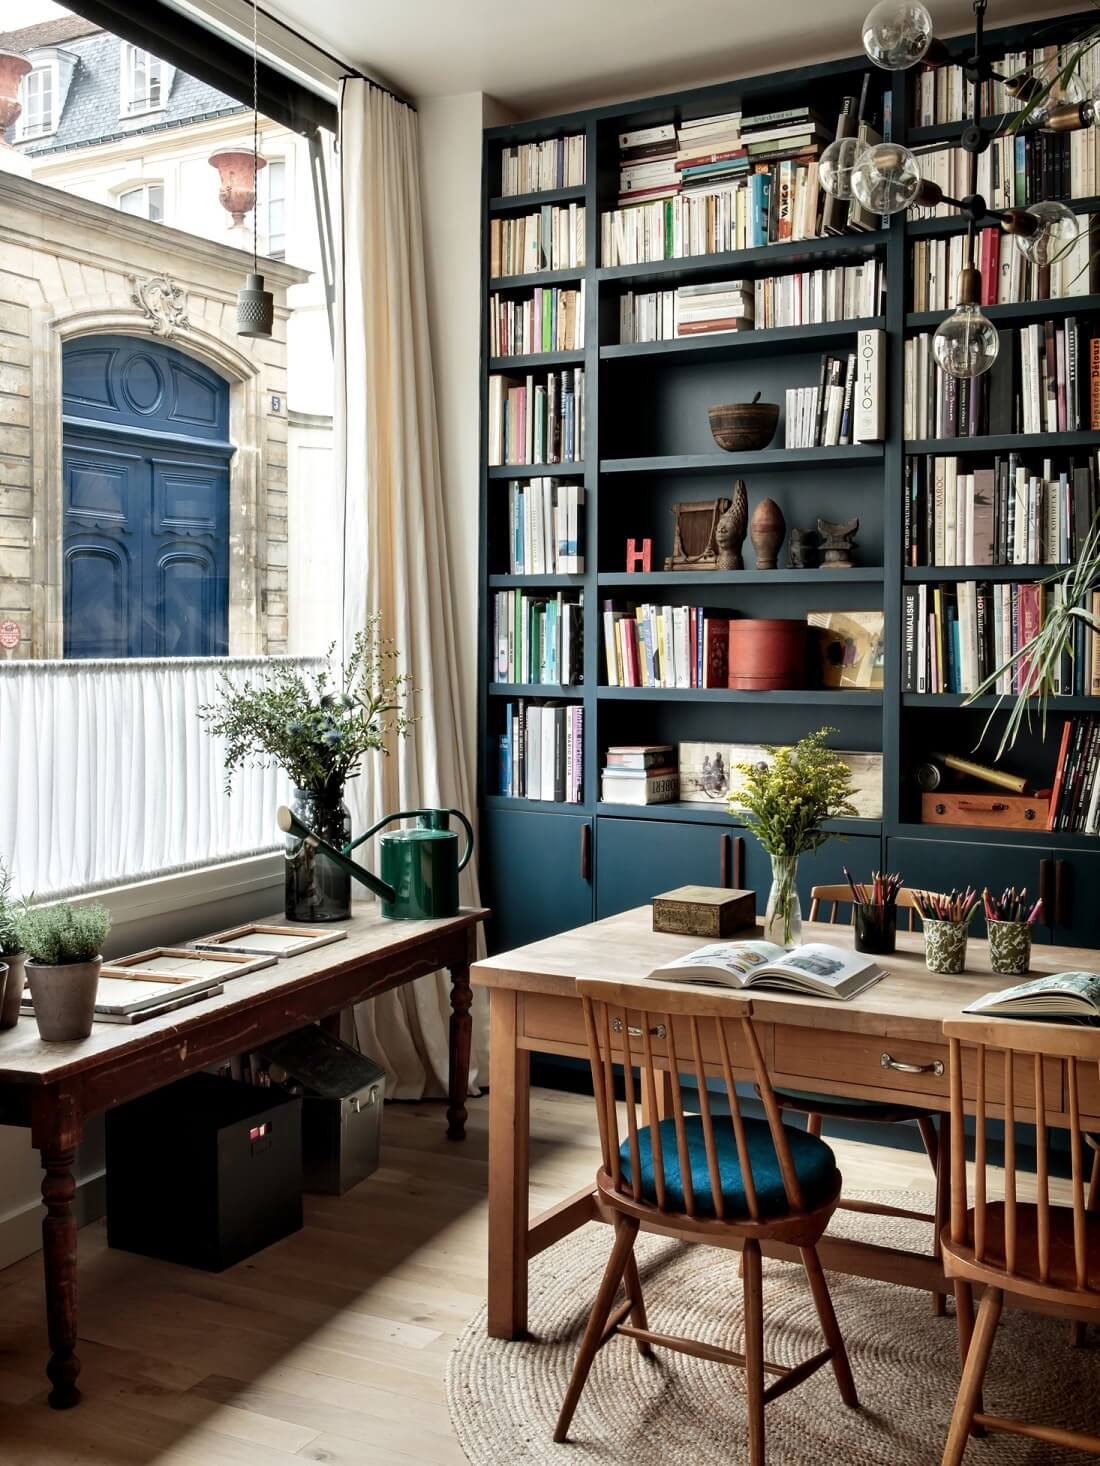 Original Details and Industrial Touches in a Family Home in Paris